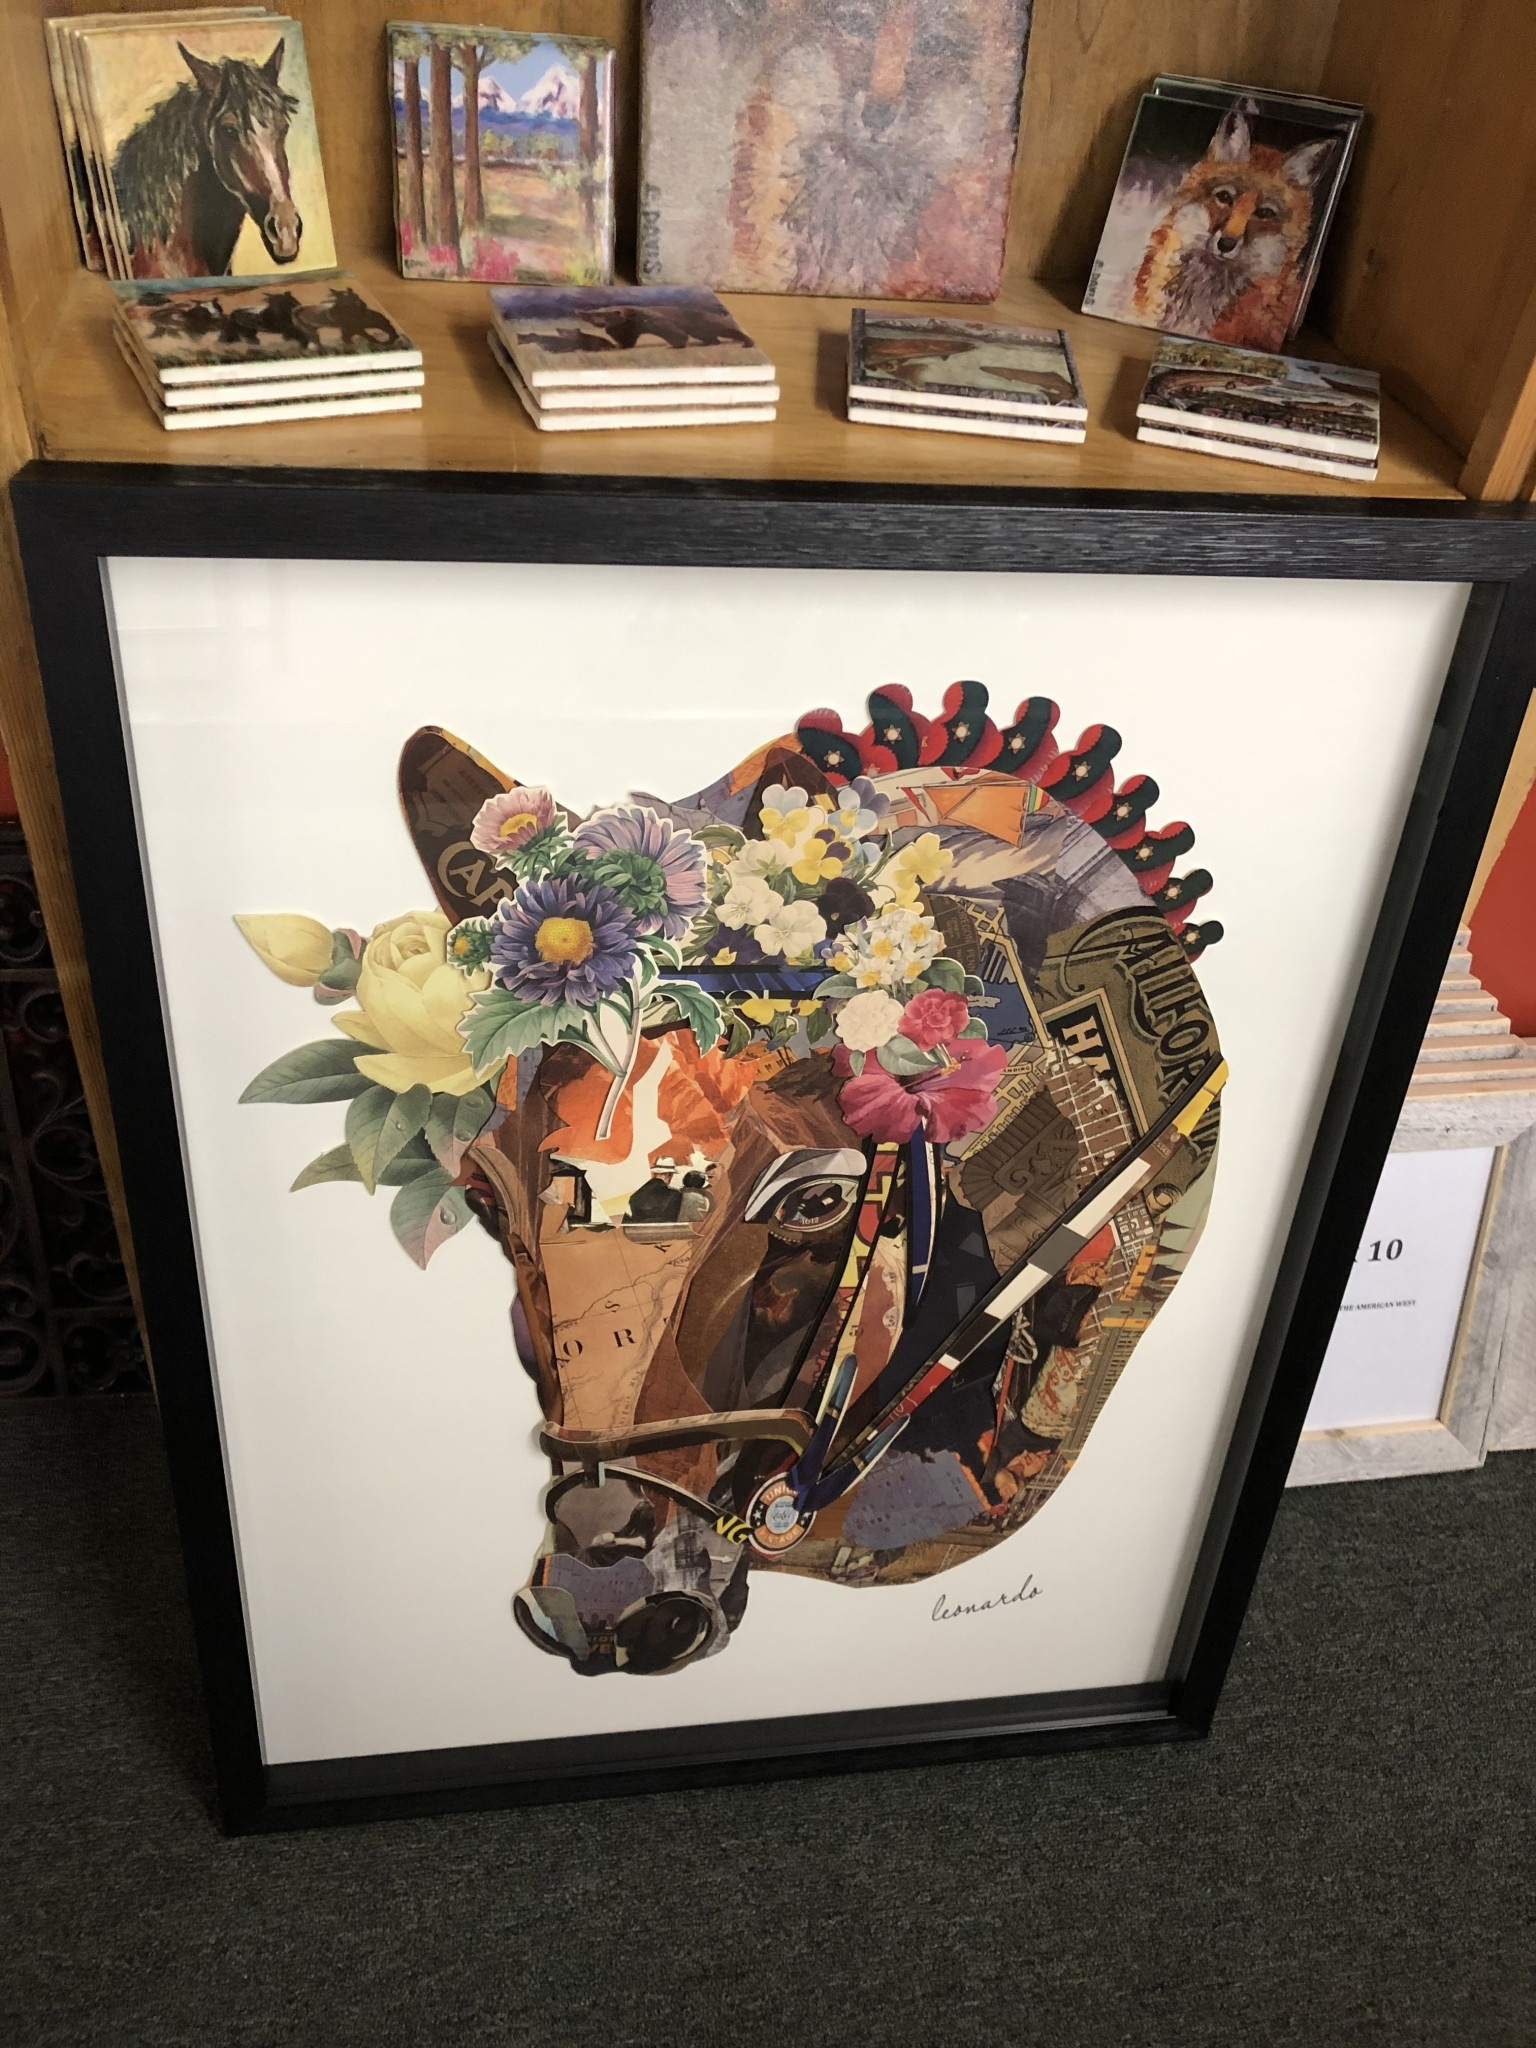 Simpkins-Canterbury Lane Collage 3D Art-Horse Head w/flowers